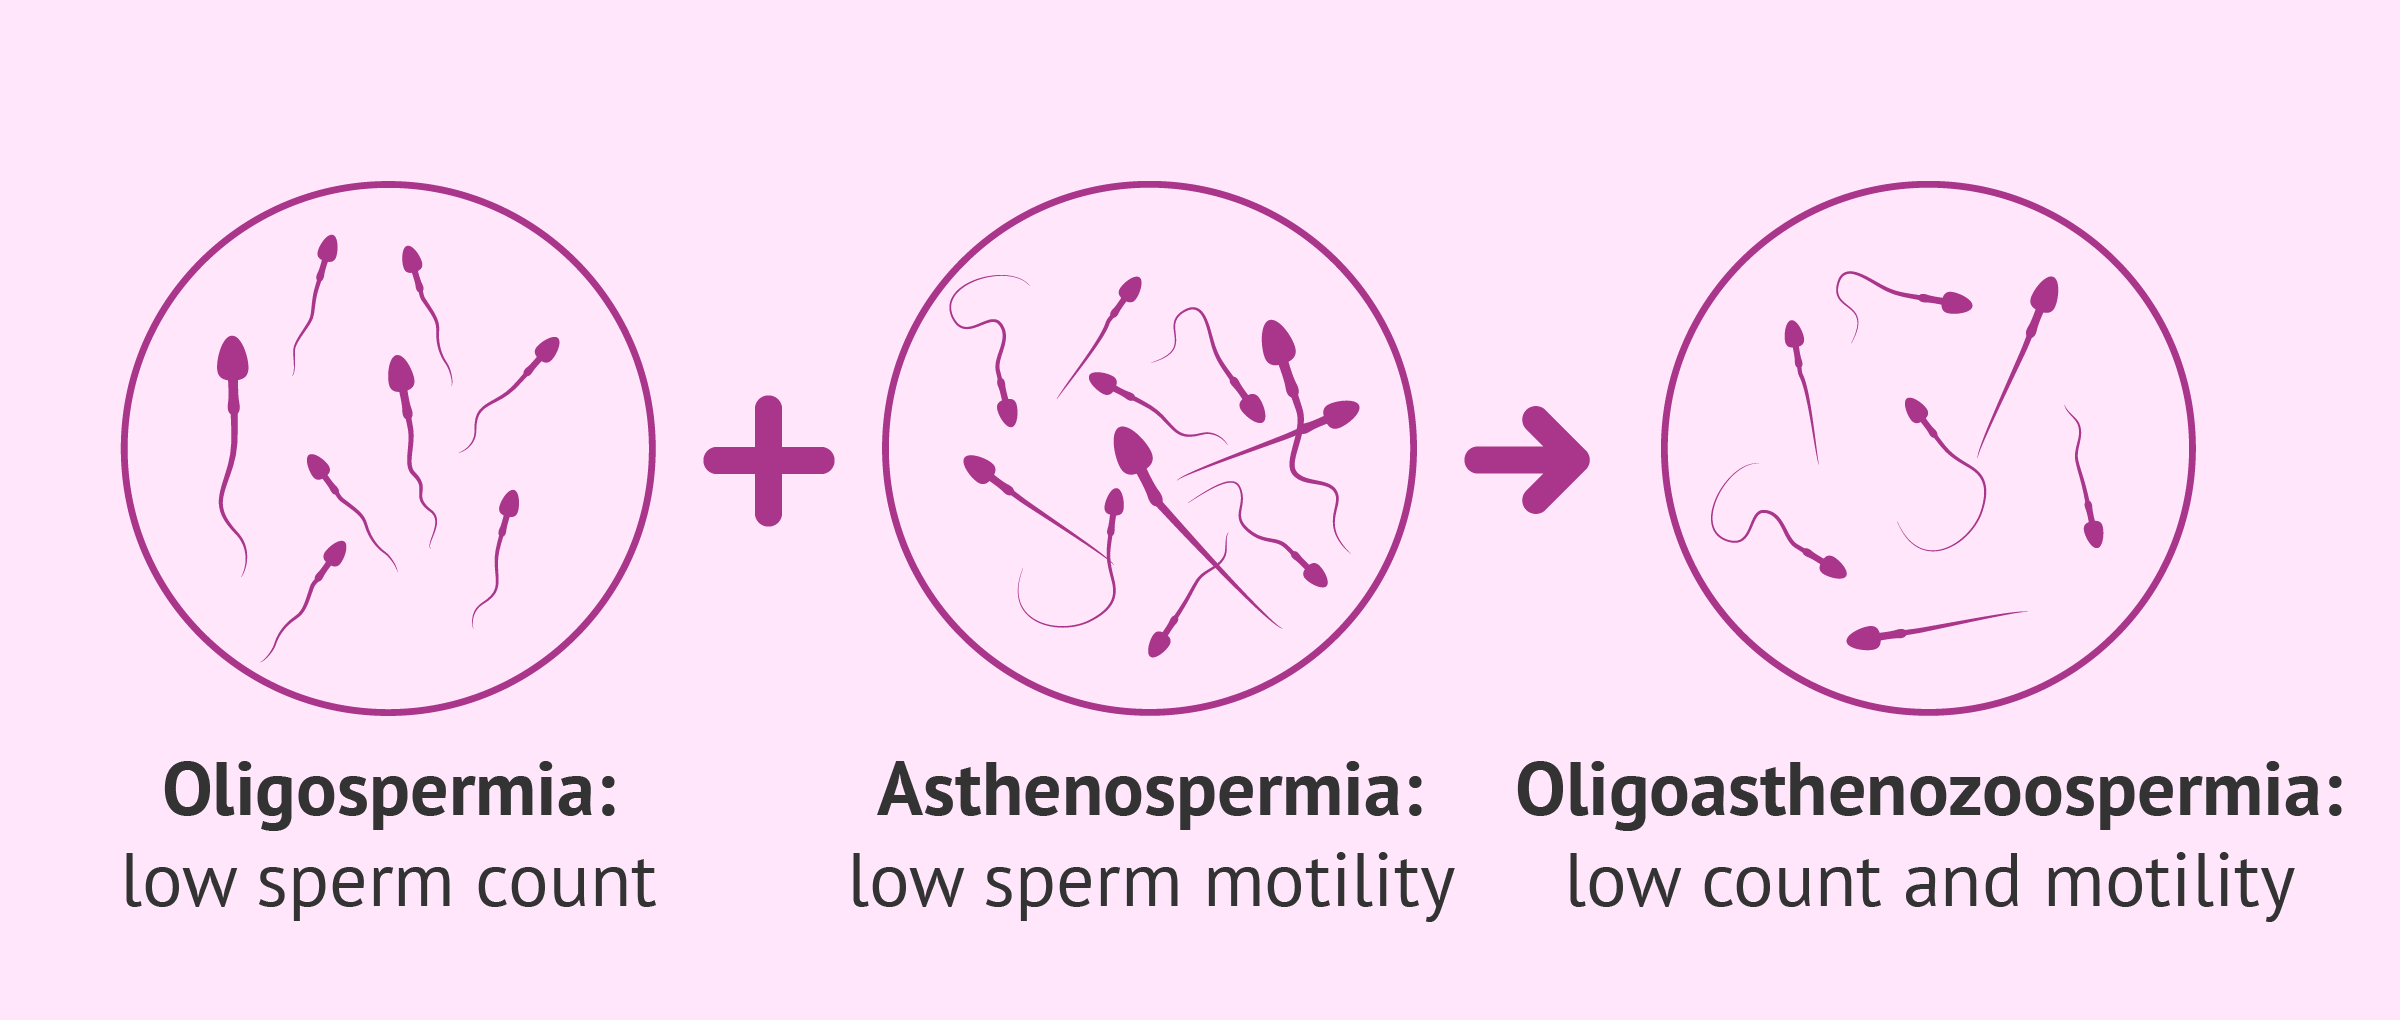 Definition of oligoasthenozoospermia